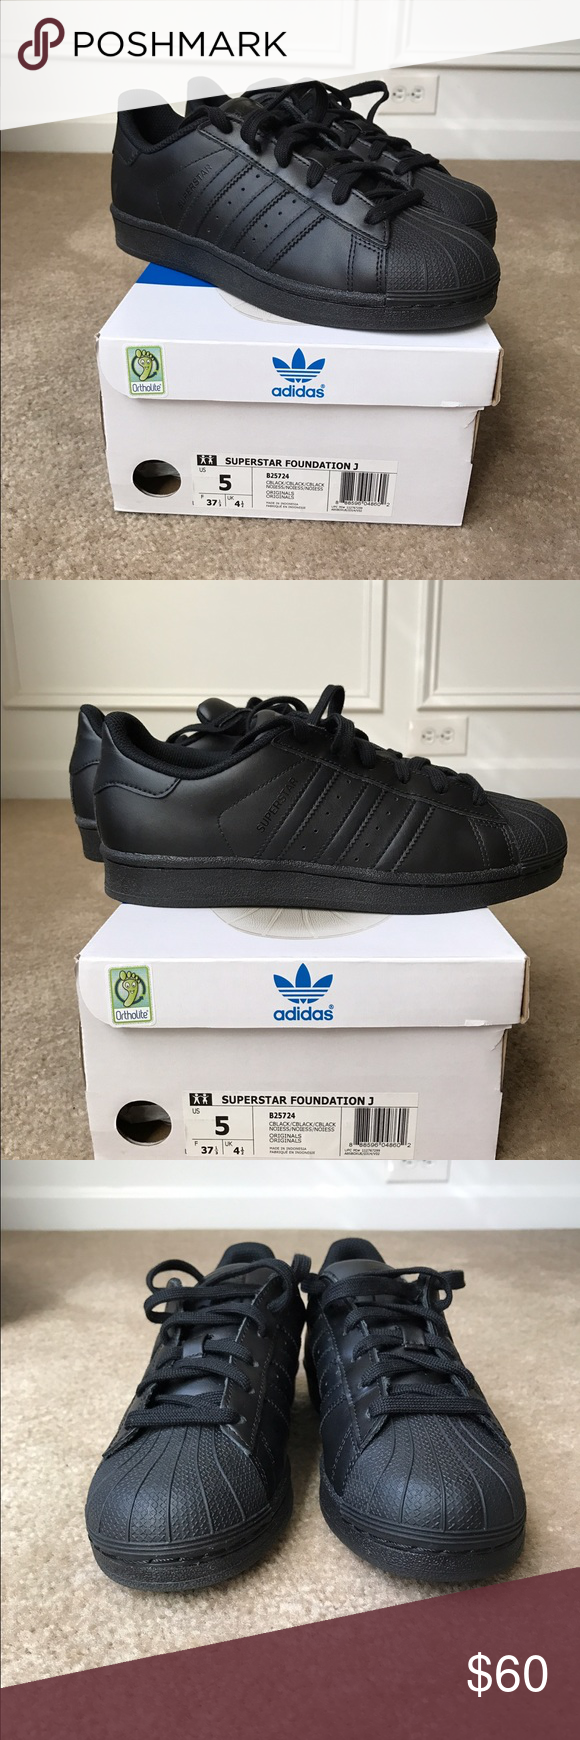 Perceptible Guinness Pío  Adidas Superstar - All Black | Adidas superstar, Shoes sneakers adidas,  Adidas